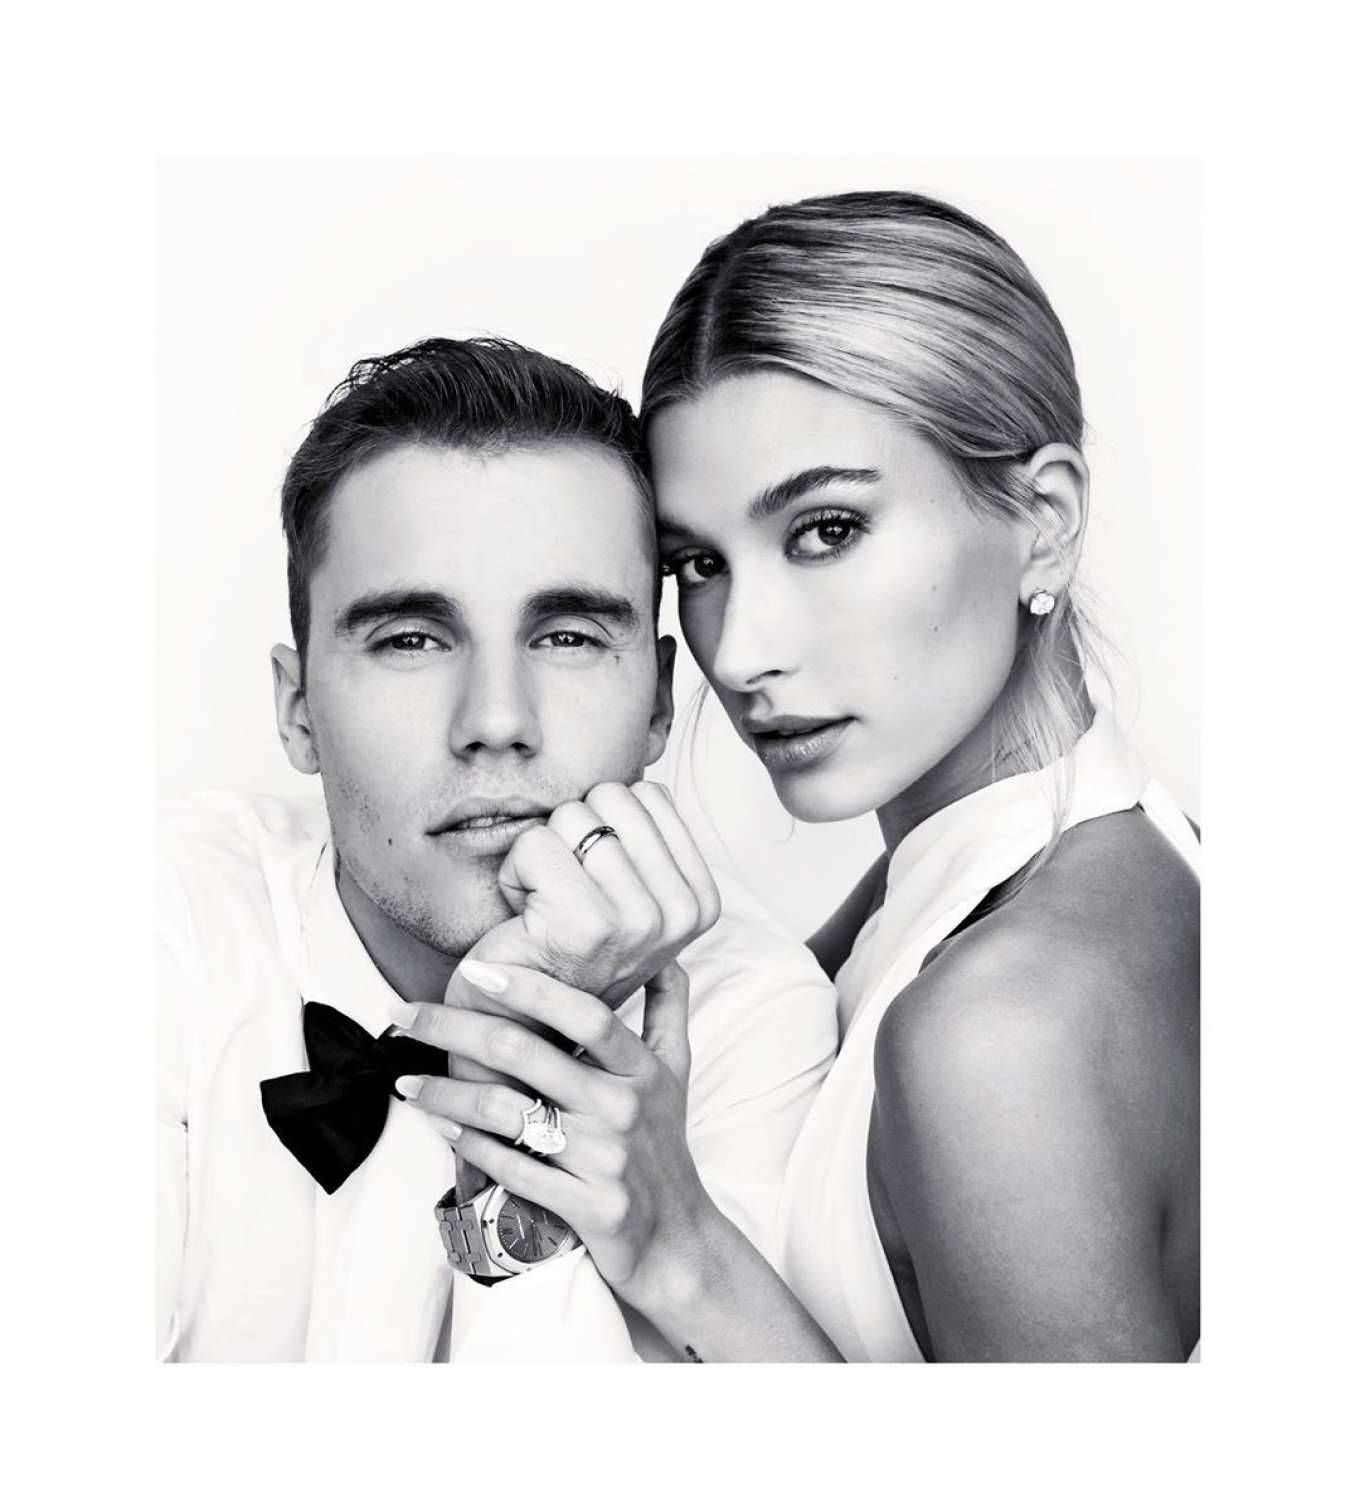 Hailey Baldwin and Justin Bieber - The Collective You Photoshoot 2019